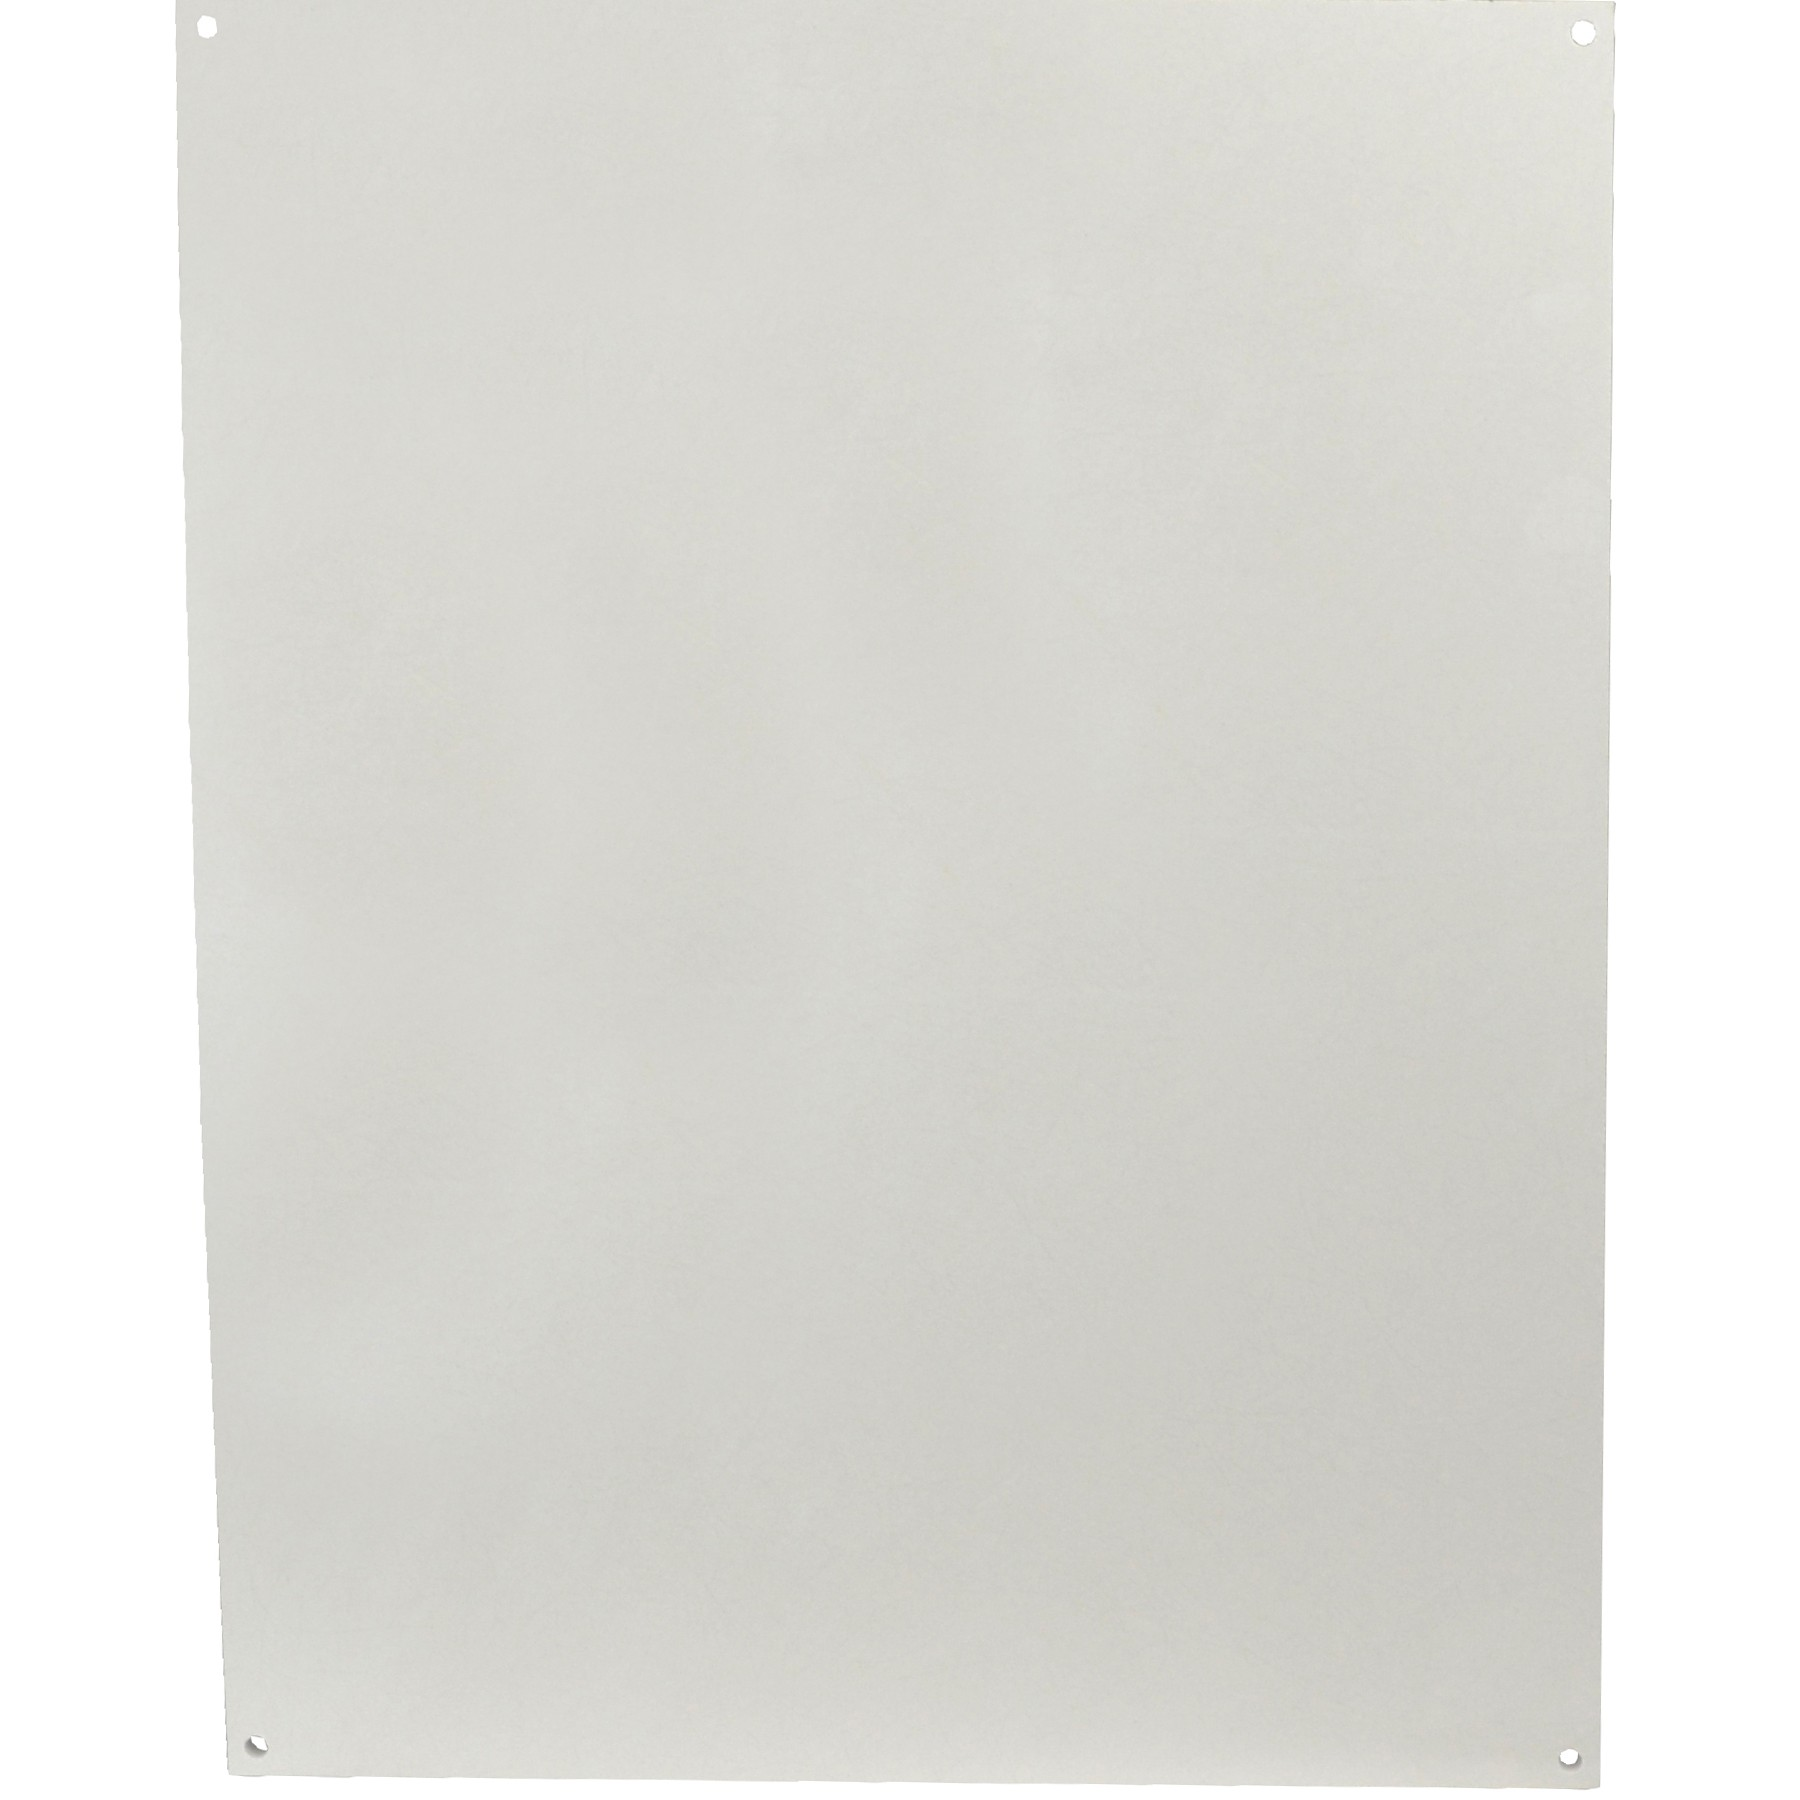 "Fiberglass Back Panel for 20"" x 16"" Enclosures"